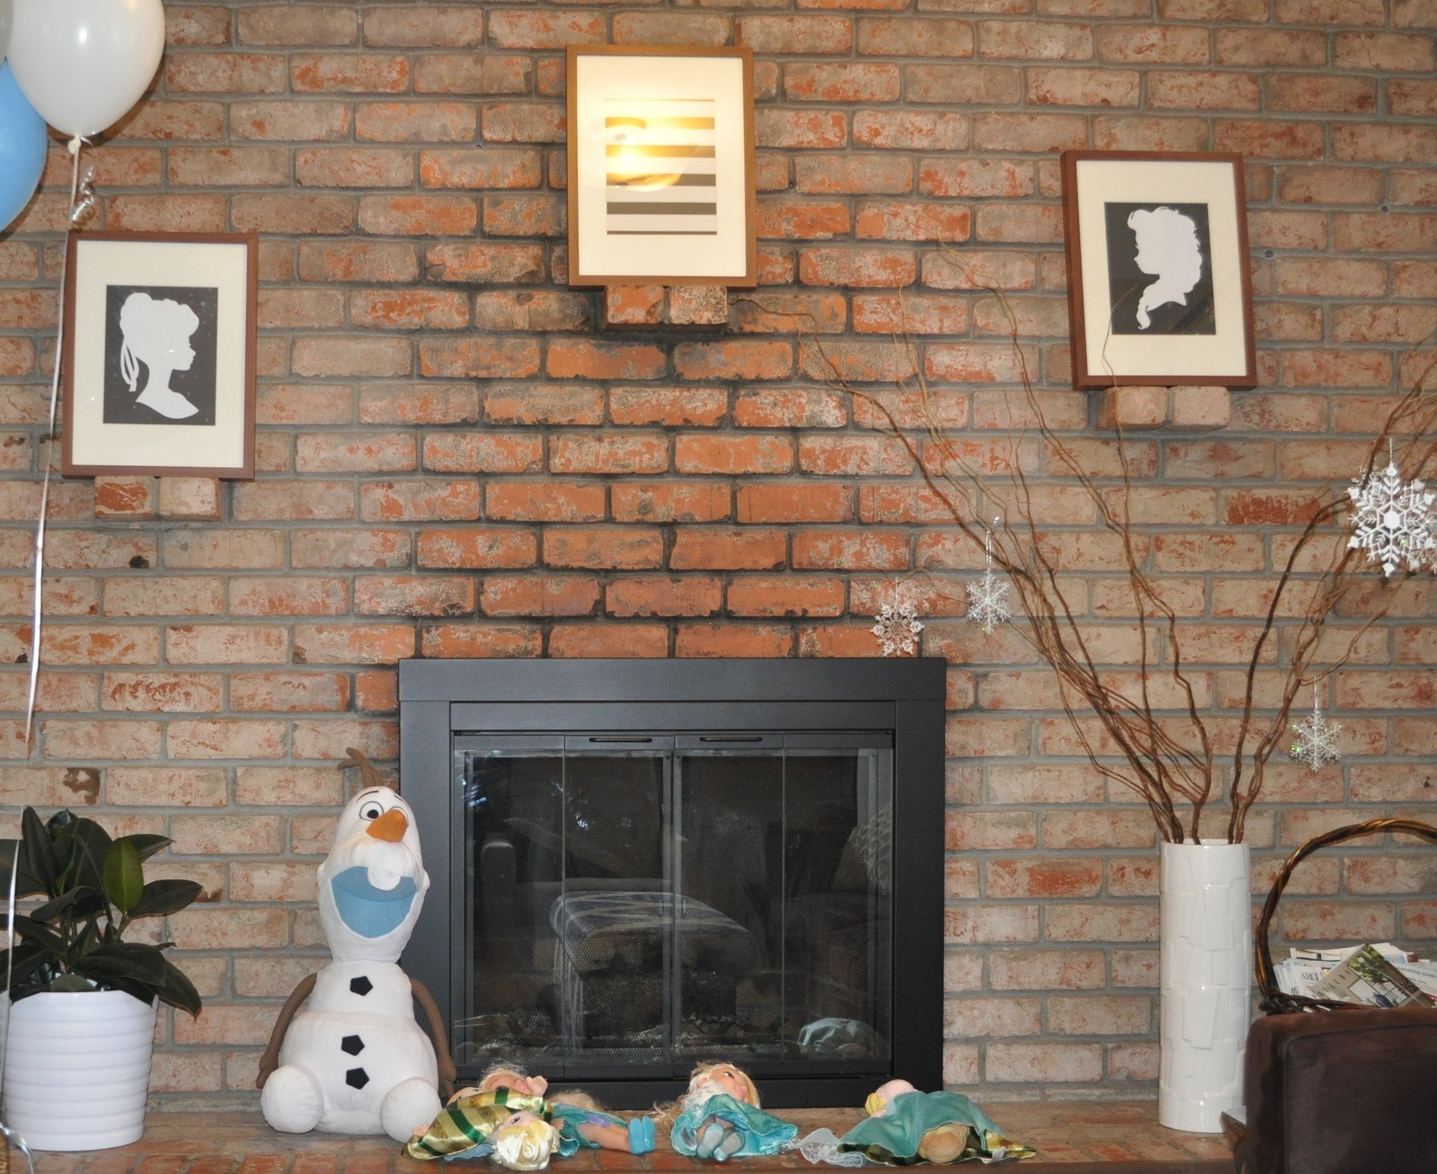 The girls' Olaf and Elsa and Anna dolls, along with Anna and Elsa cut-outs in the frames. I'm a scissor master